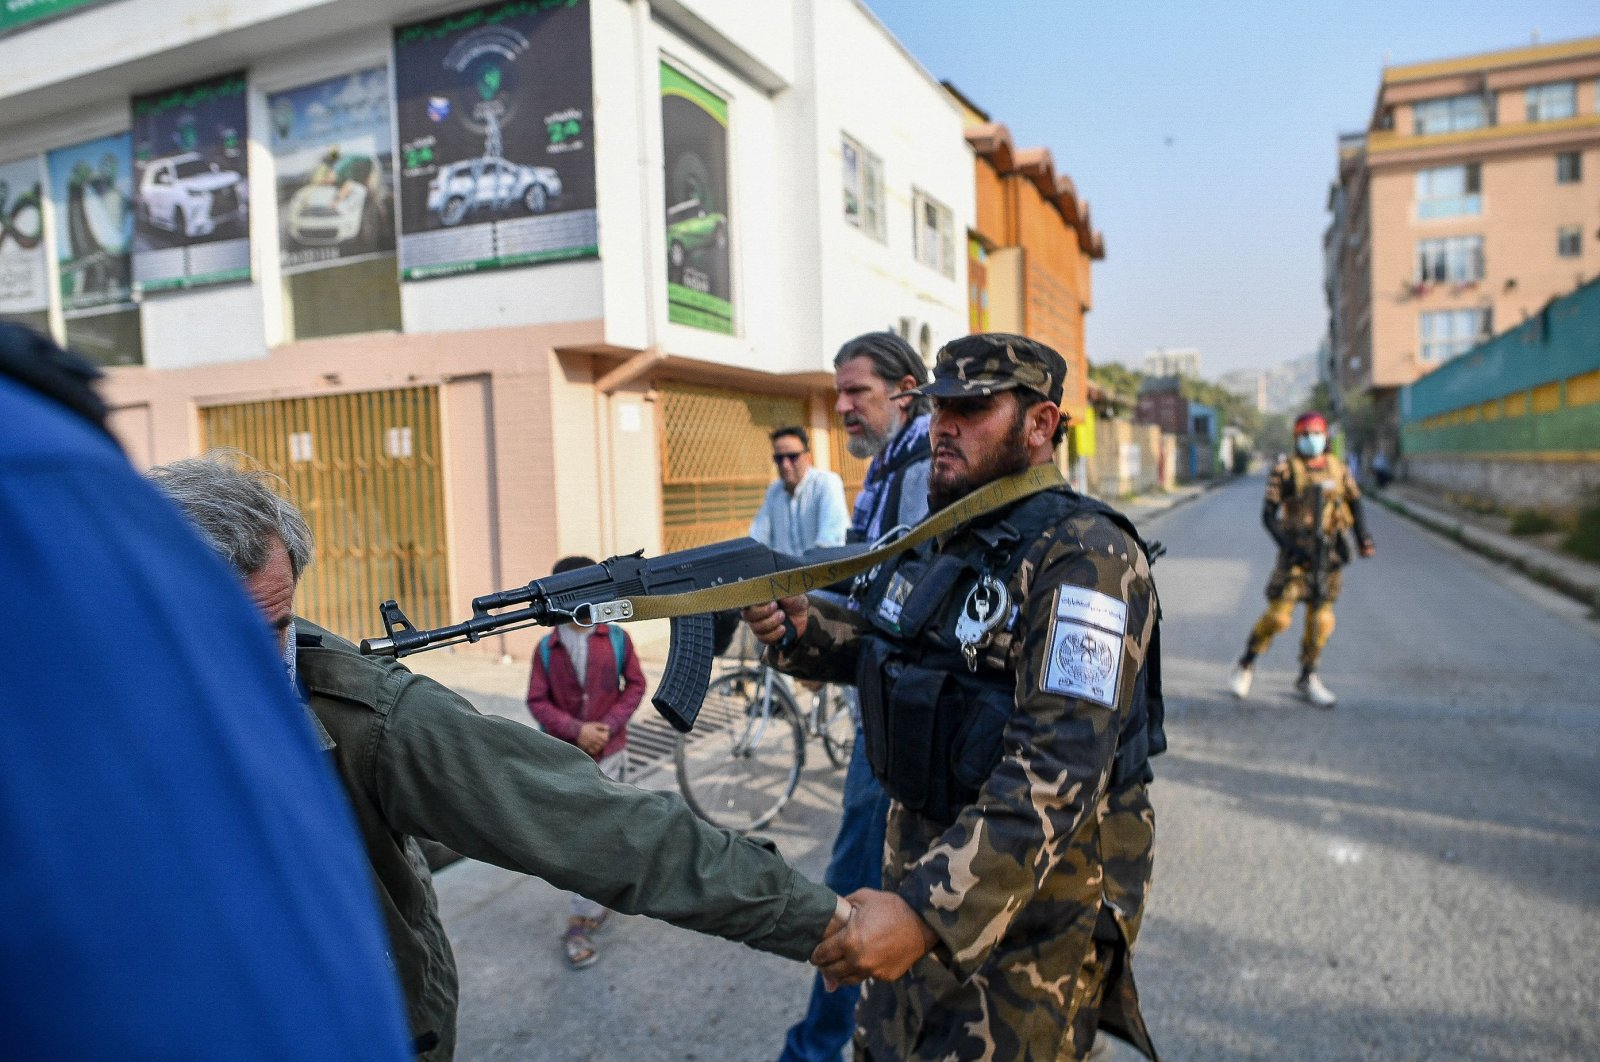 A member of the Taliban special forces pushes a journalist (L) while covering a demonstration by female protestors outside a school in Kabul, Afghanistan, on Sept. 30, 2021. (AFP Photo)